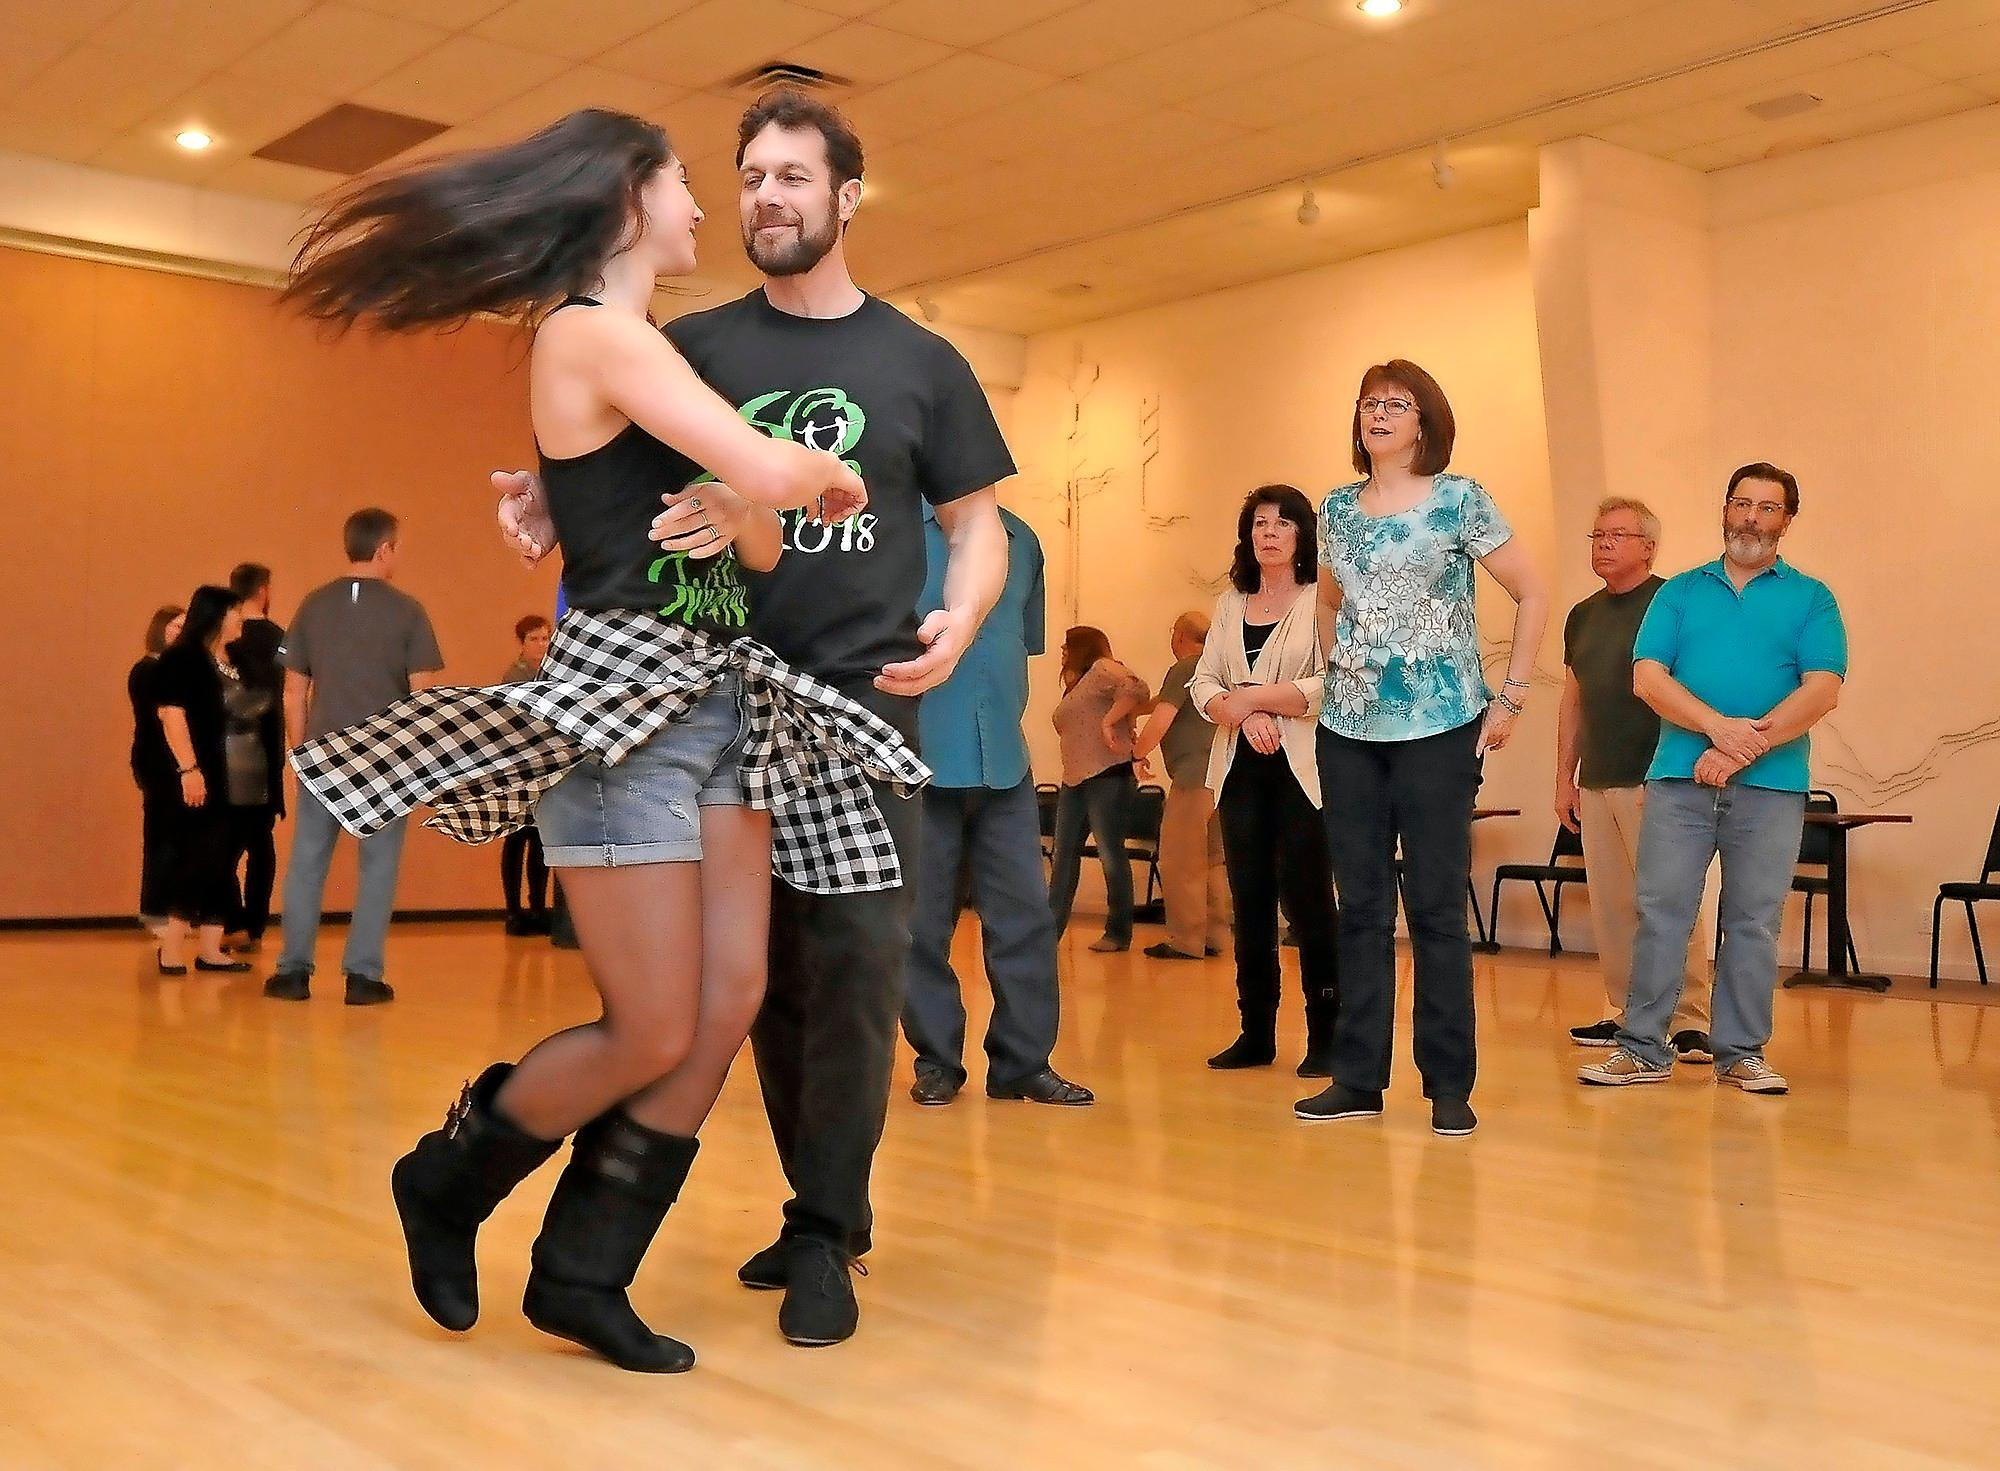 Dave Kahn and Tess Minnick give a swing dance class at the Evergreen Ballroom. - PHOTO BY DENISE BARATTA